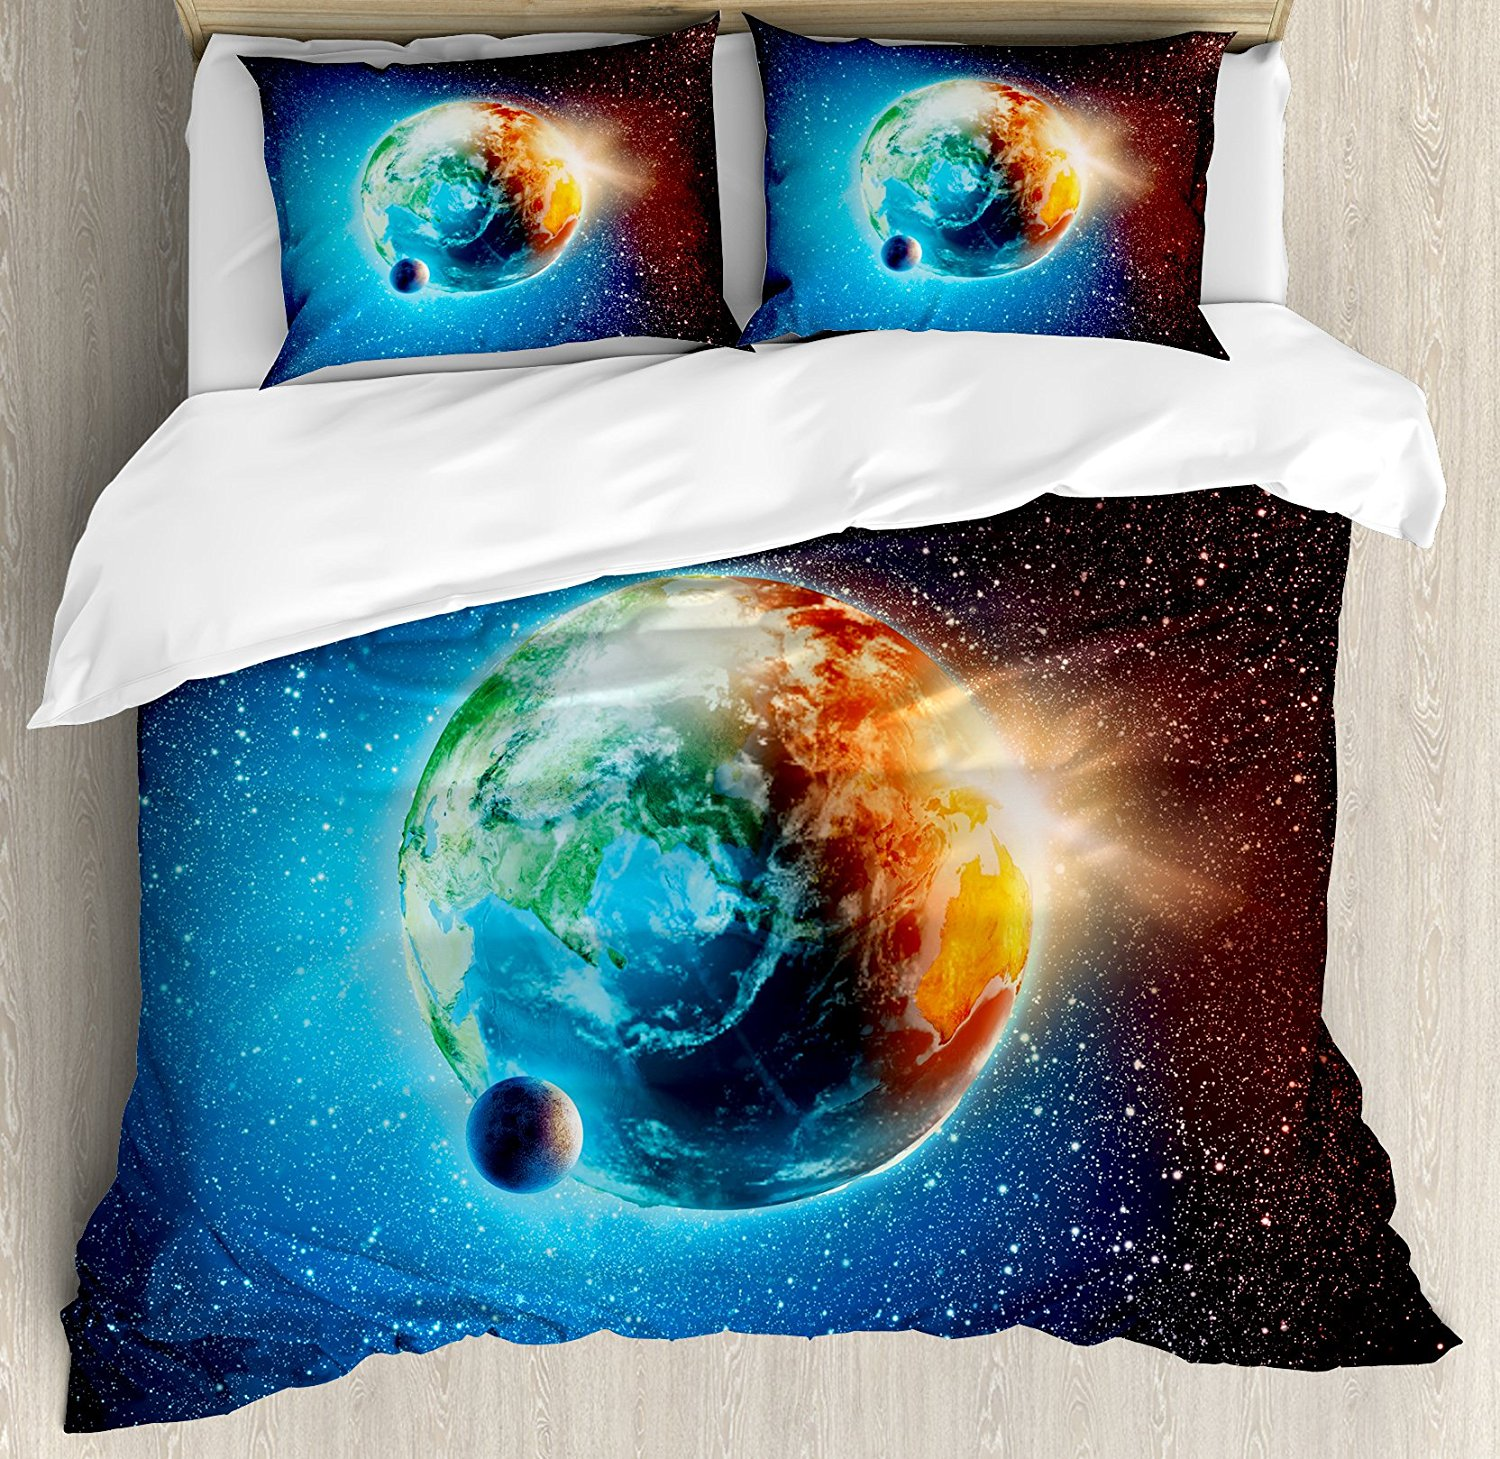 3d Earth And Meteor Shower Printed Cotton 3-piece Bedding Sets/duvet Covers Bedding Sets